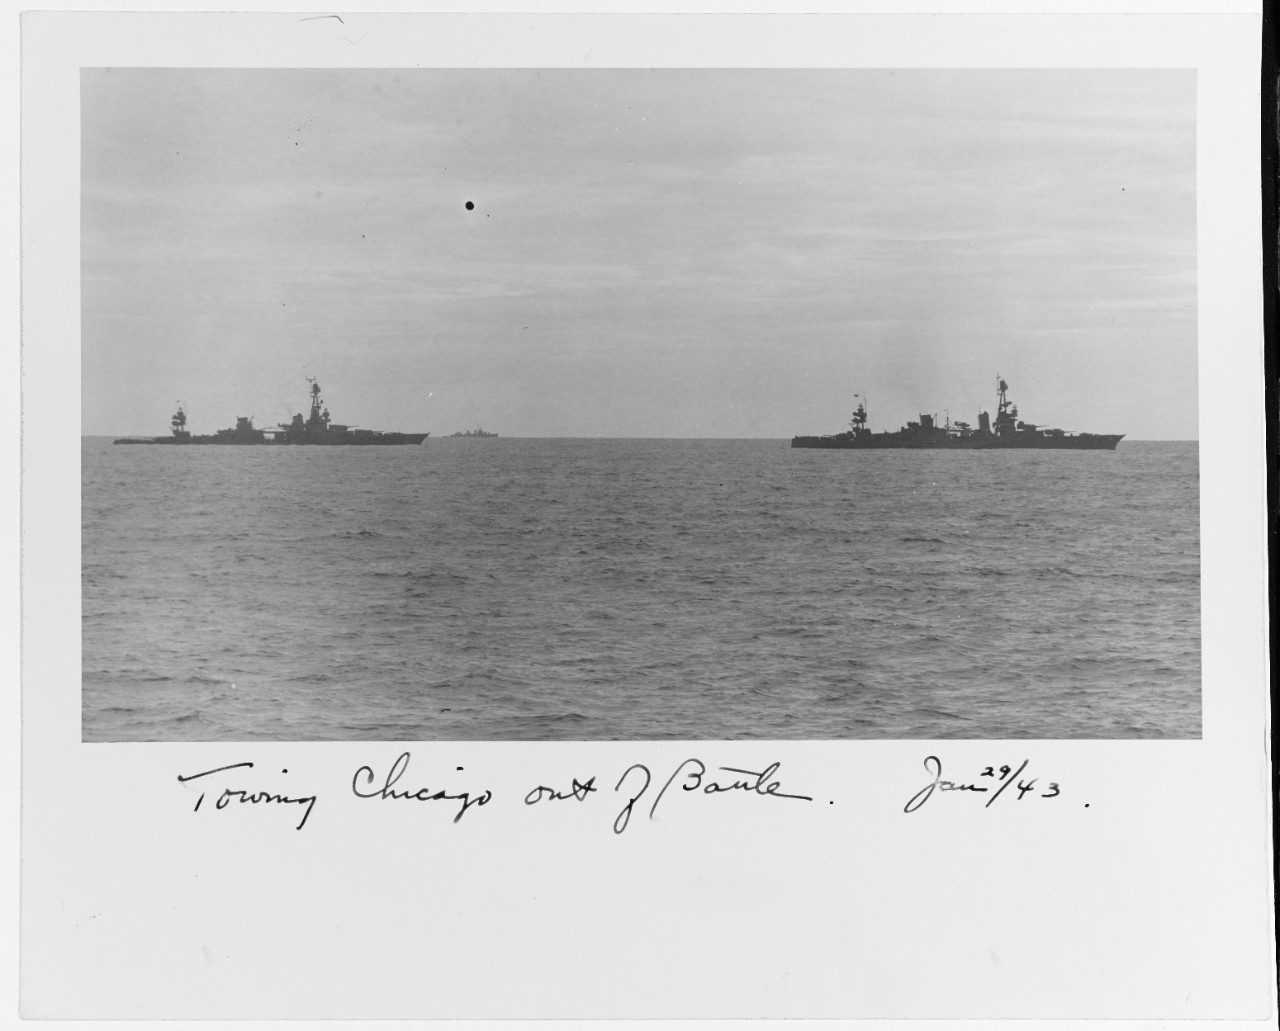 Chicago (left) slowly emerges from the battle under tow of Louisville on the morning of 30 January 1943. A tug, most likely Navajo (AT-64), steams alongside Louisville. (Collection of Vice Adm. Robert C. Giffen, Naval History and Heritage Command Photograph NH 94681)